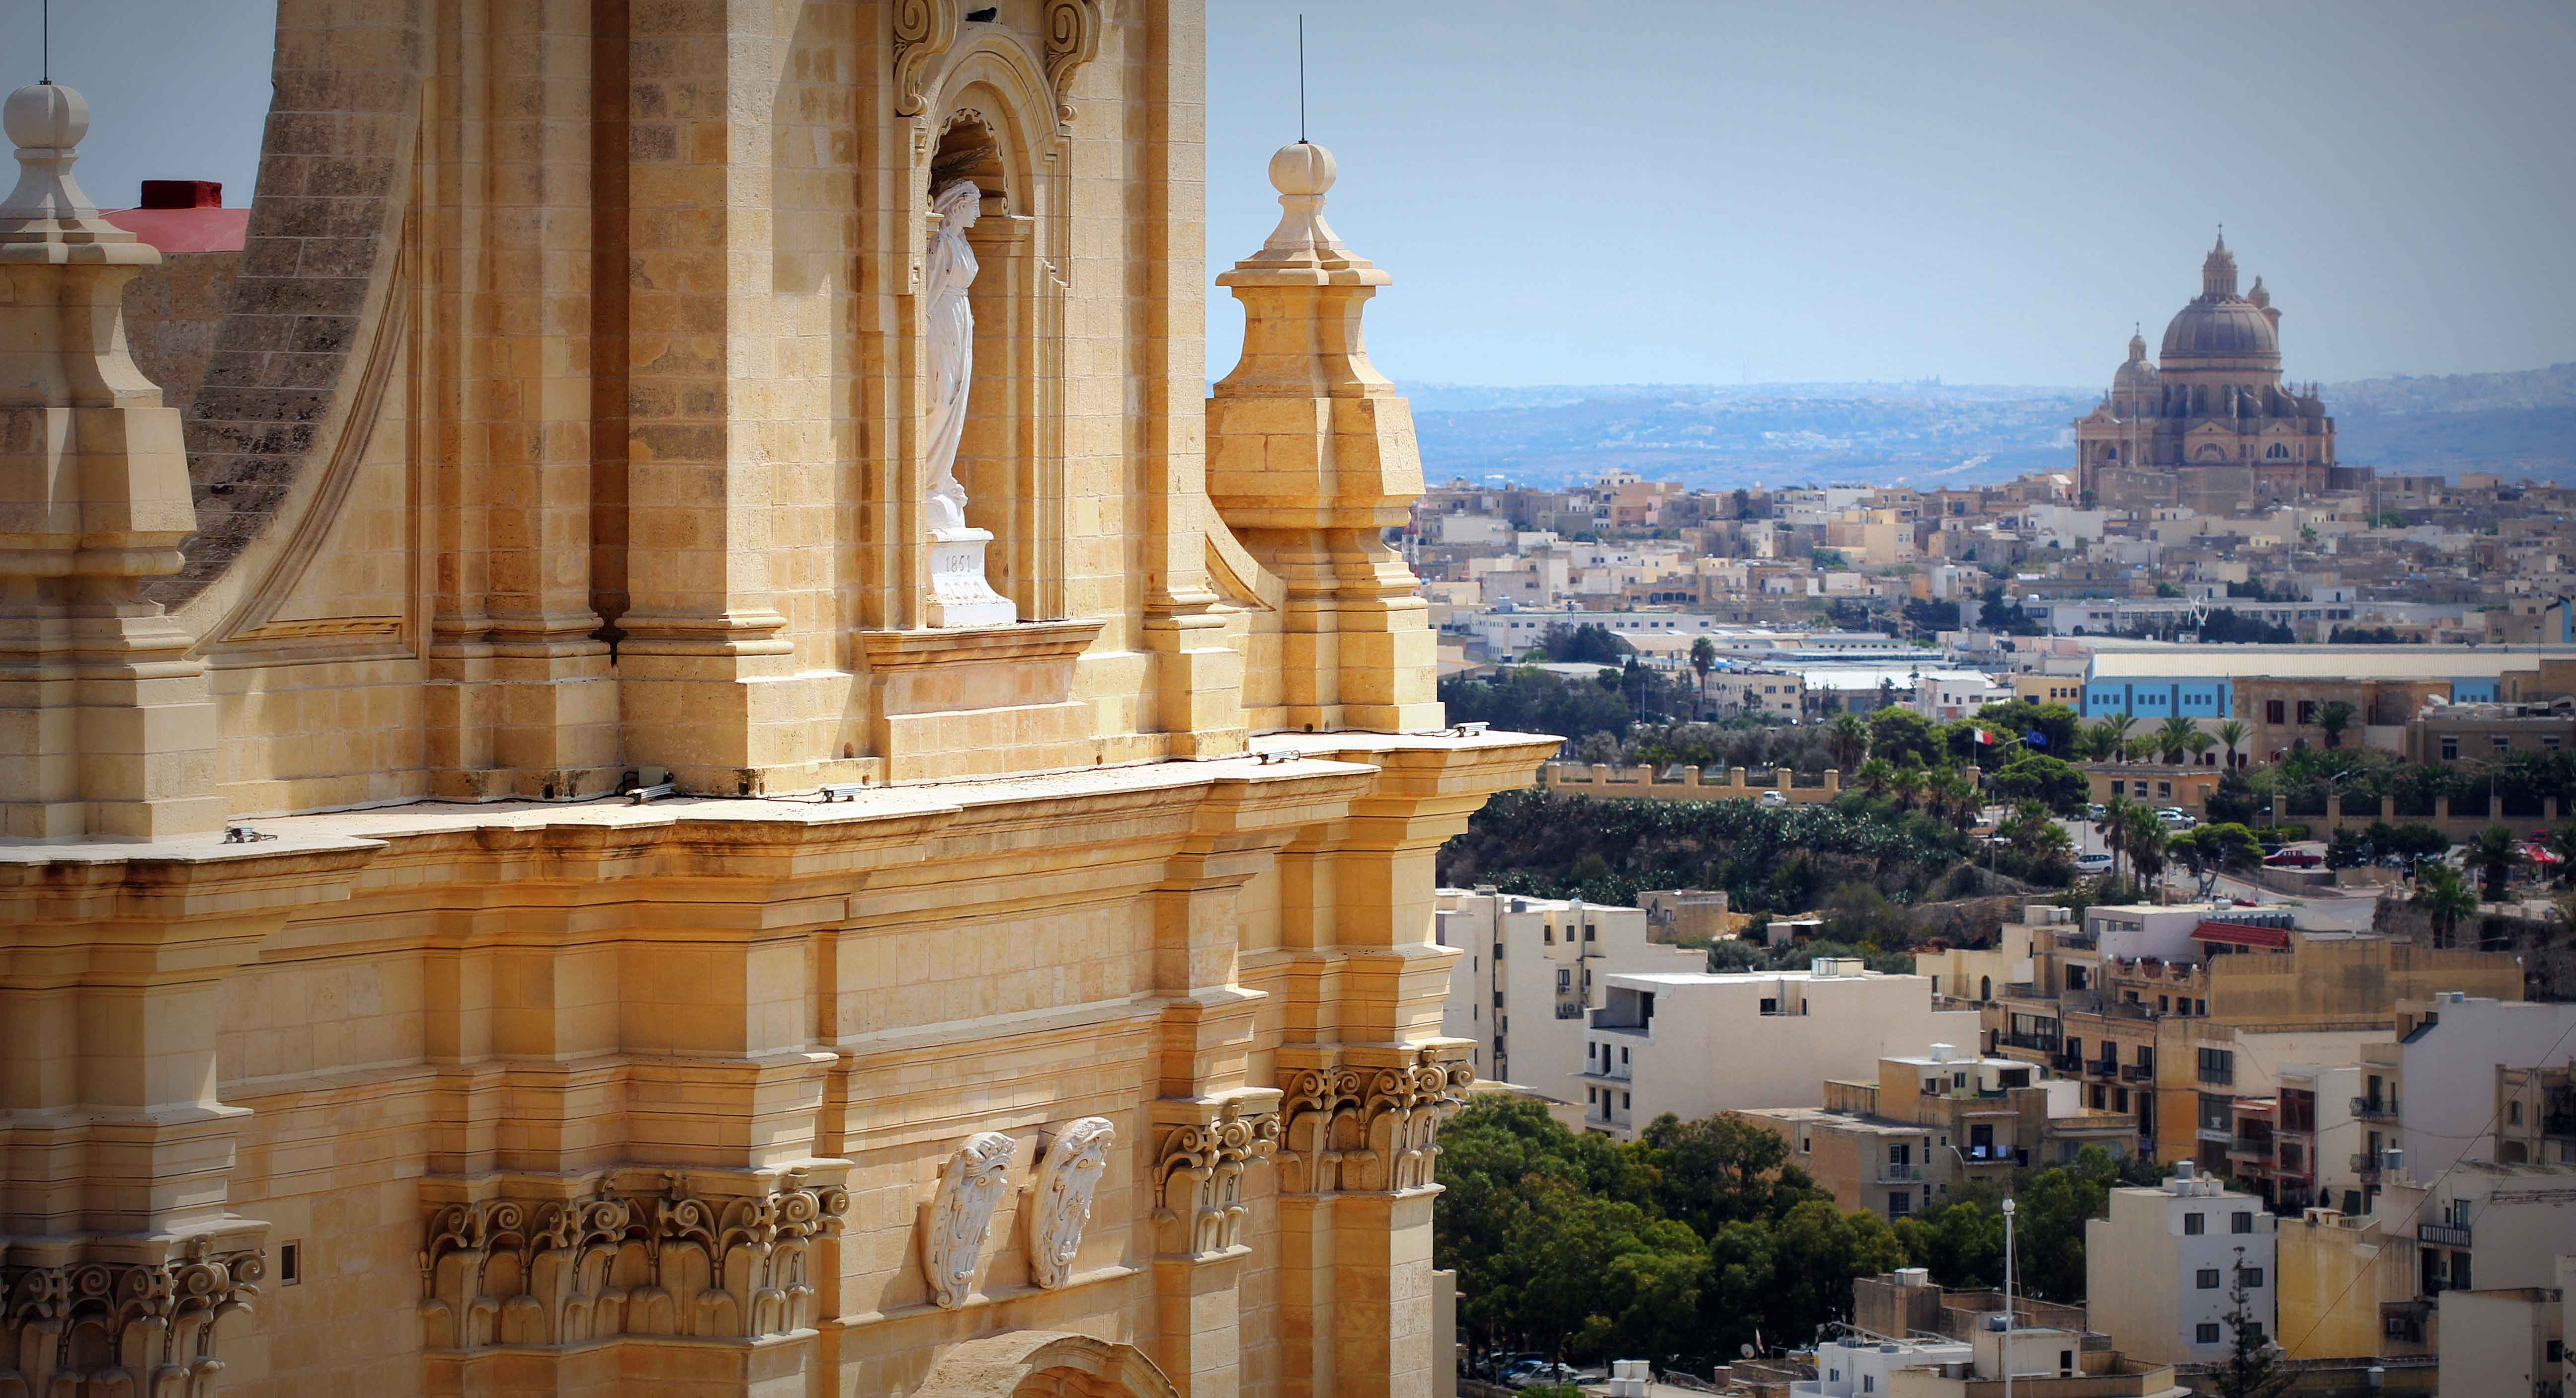 Canva---Aeriel-view-of-city-Victoria-or-Rabat-and-fragment-of-Gozo-Cathedral-,-Victoria,-Gozo,-Malta